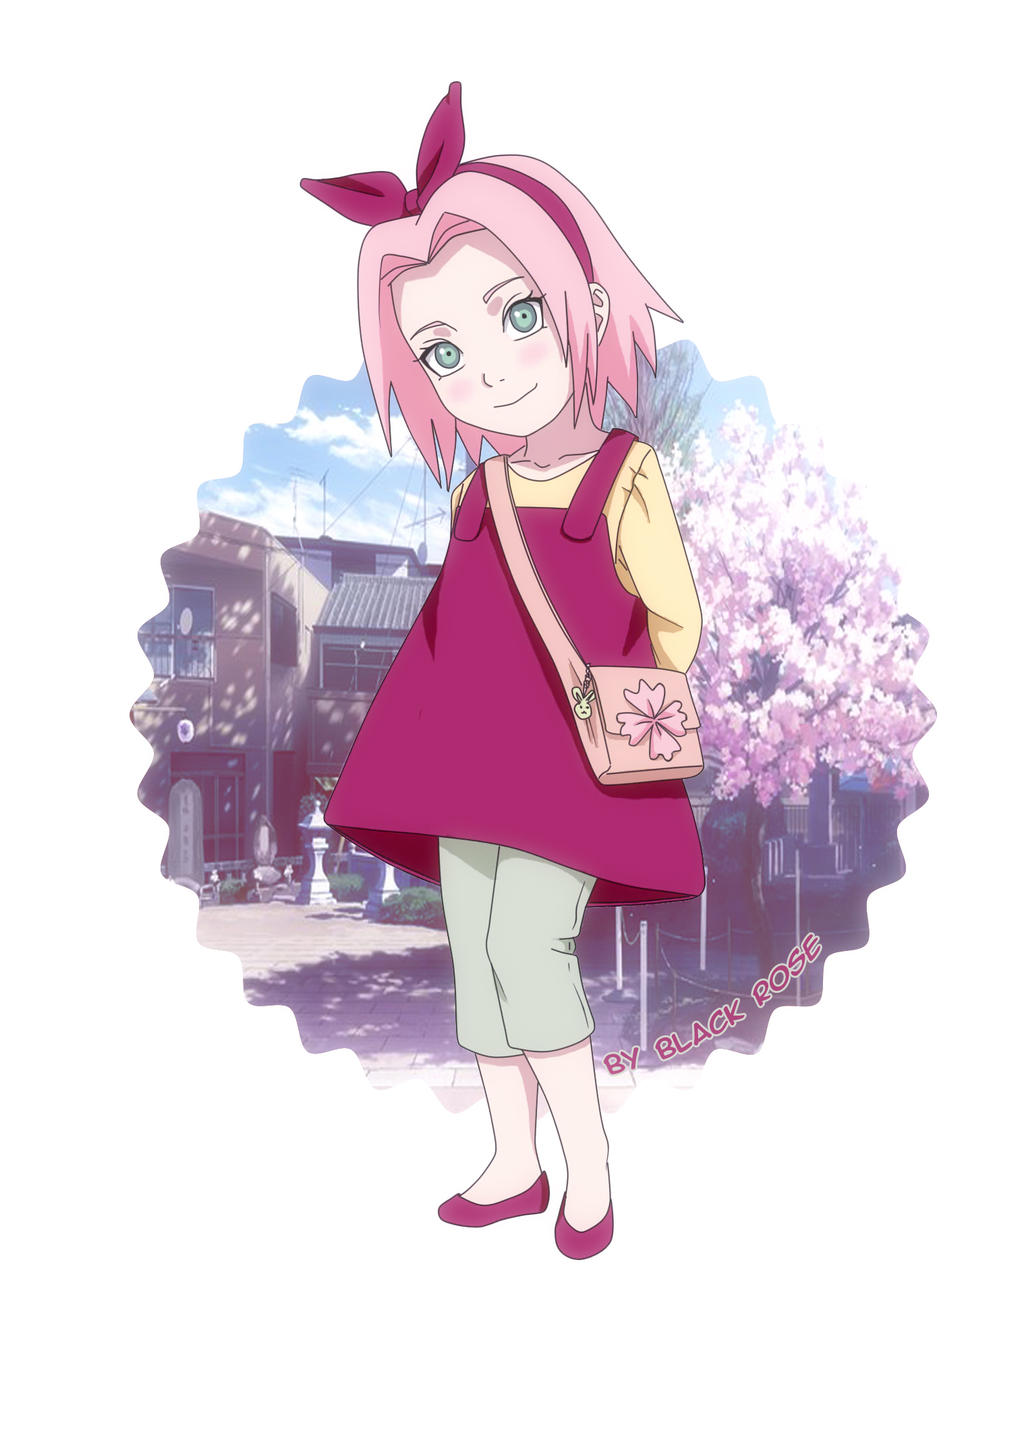 Diaper Girl 170983469 furthermore Favorite Anime Groups besides Ombre Hair Cerise La Couleur Tendance Pour Les Brunes 22 Ph 12972 together with Babs Tarr Talks Batgirls New Beginnings in addition Grunge. on sailor moon hairstyles